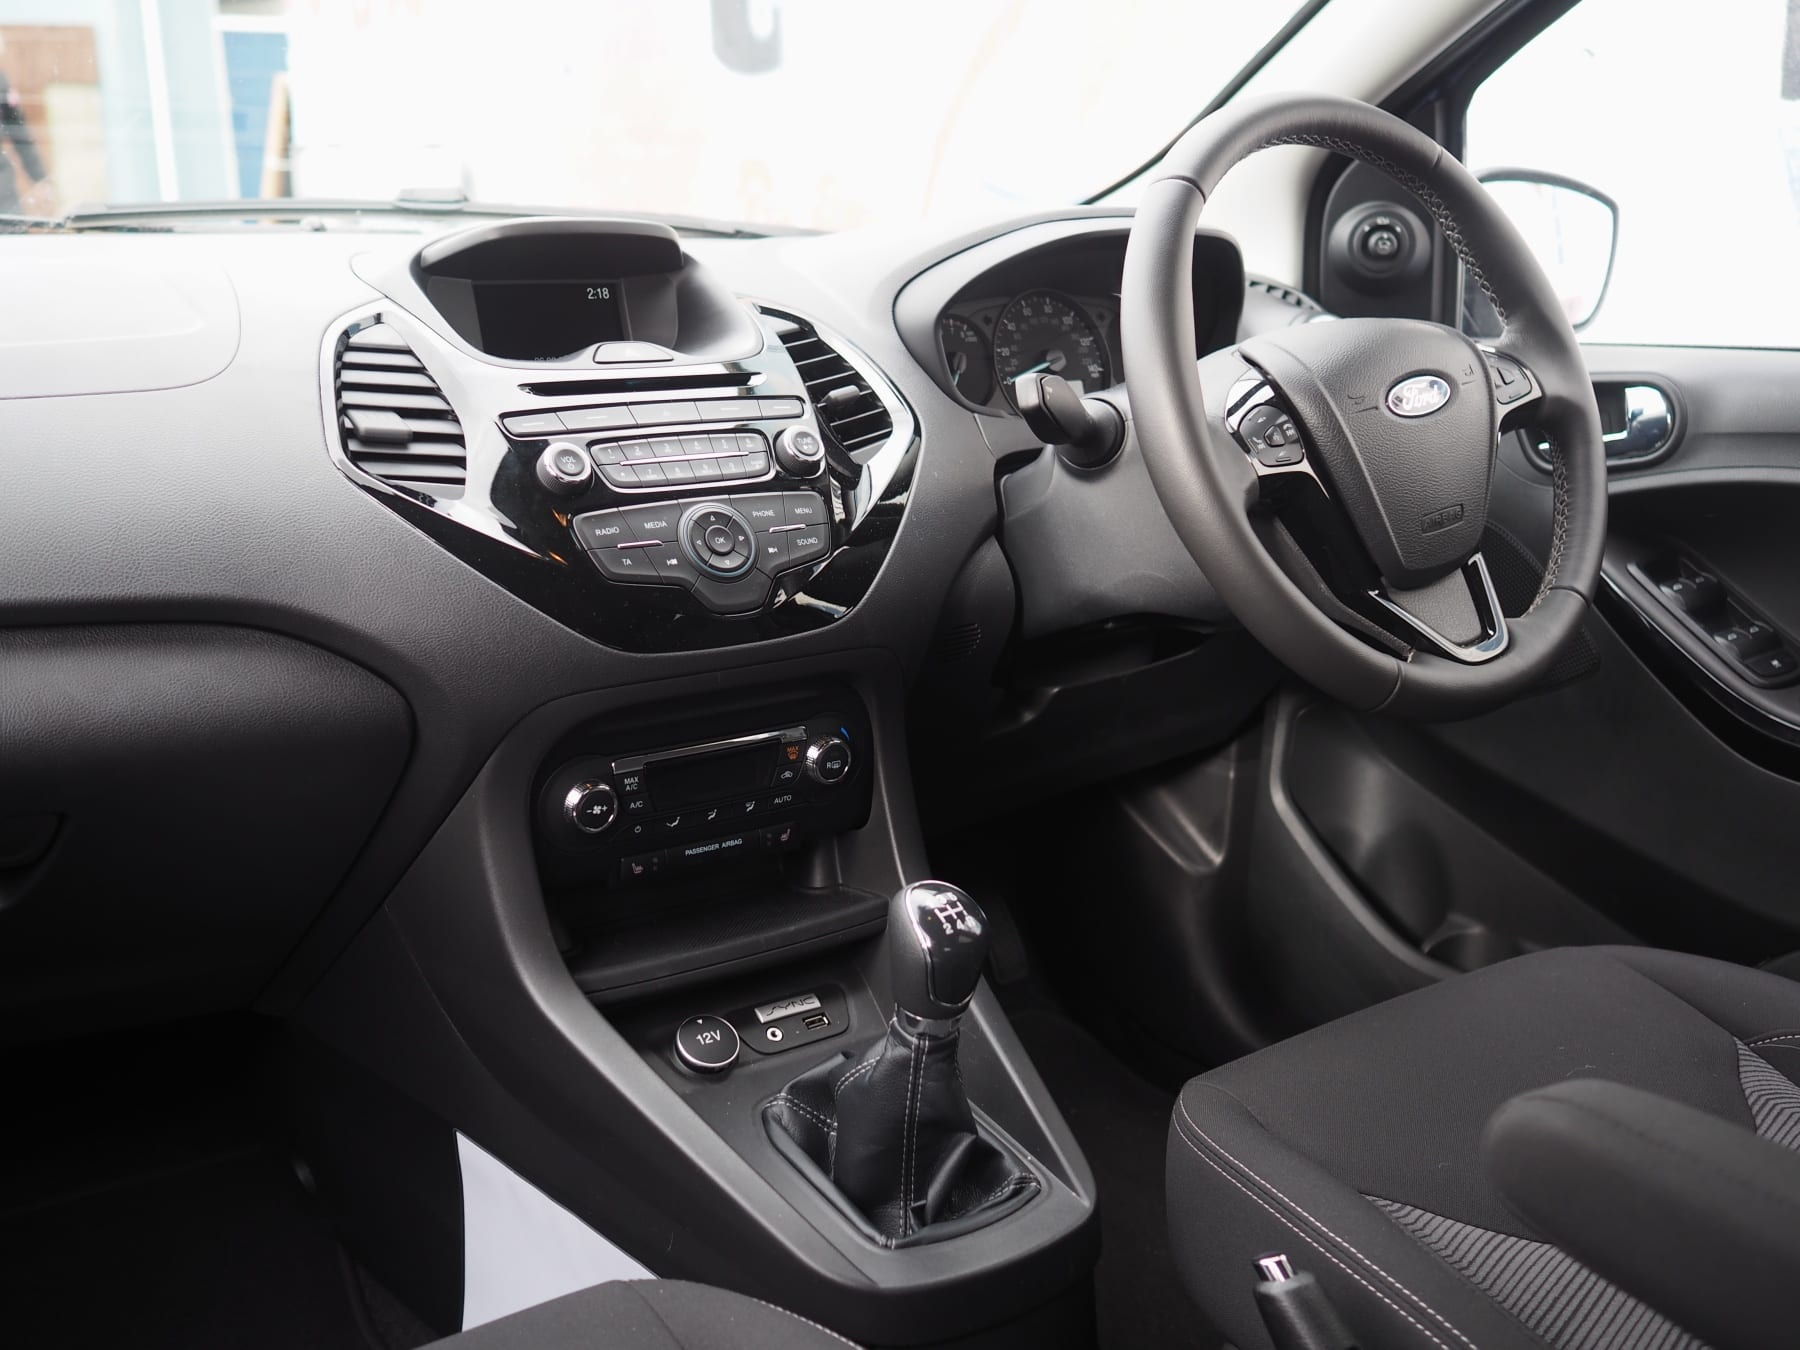 Interior of Ford Ka+